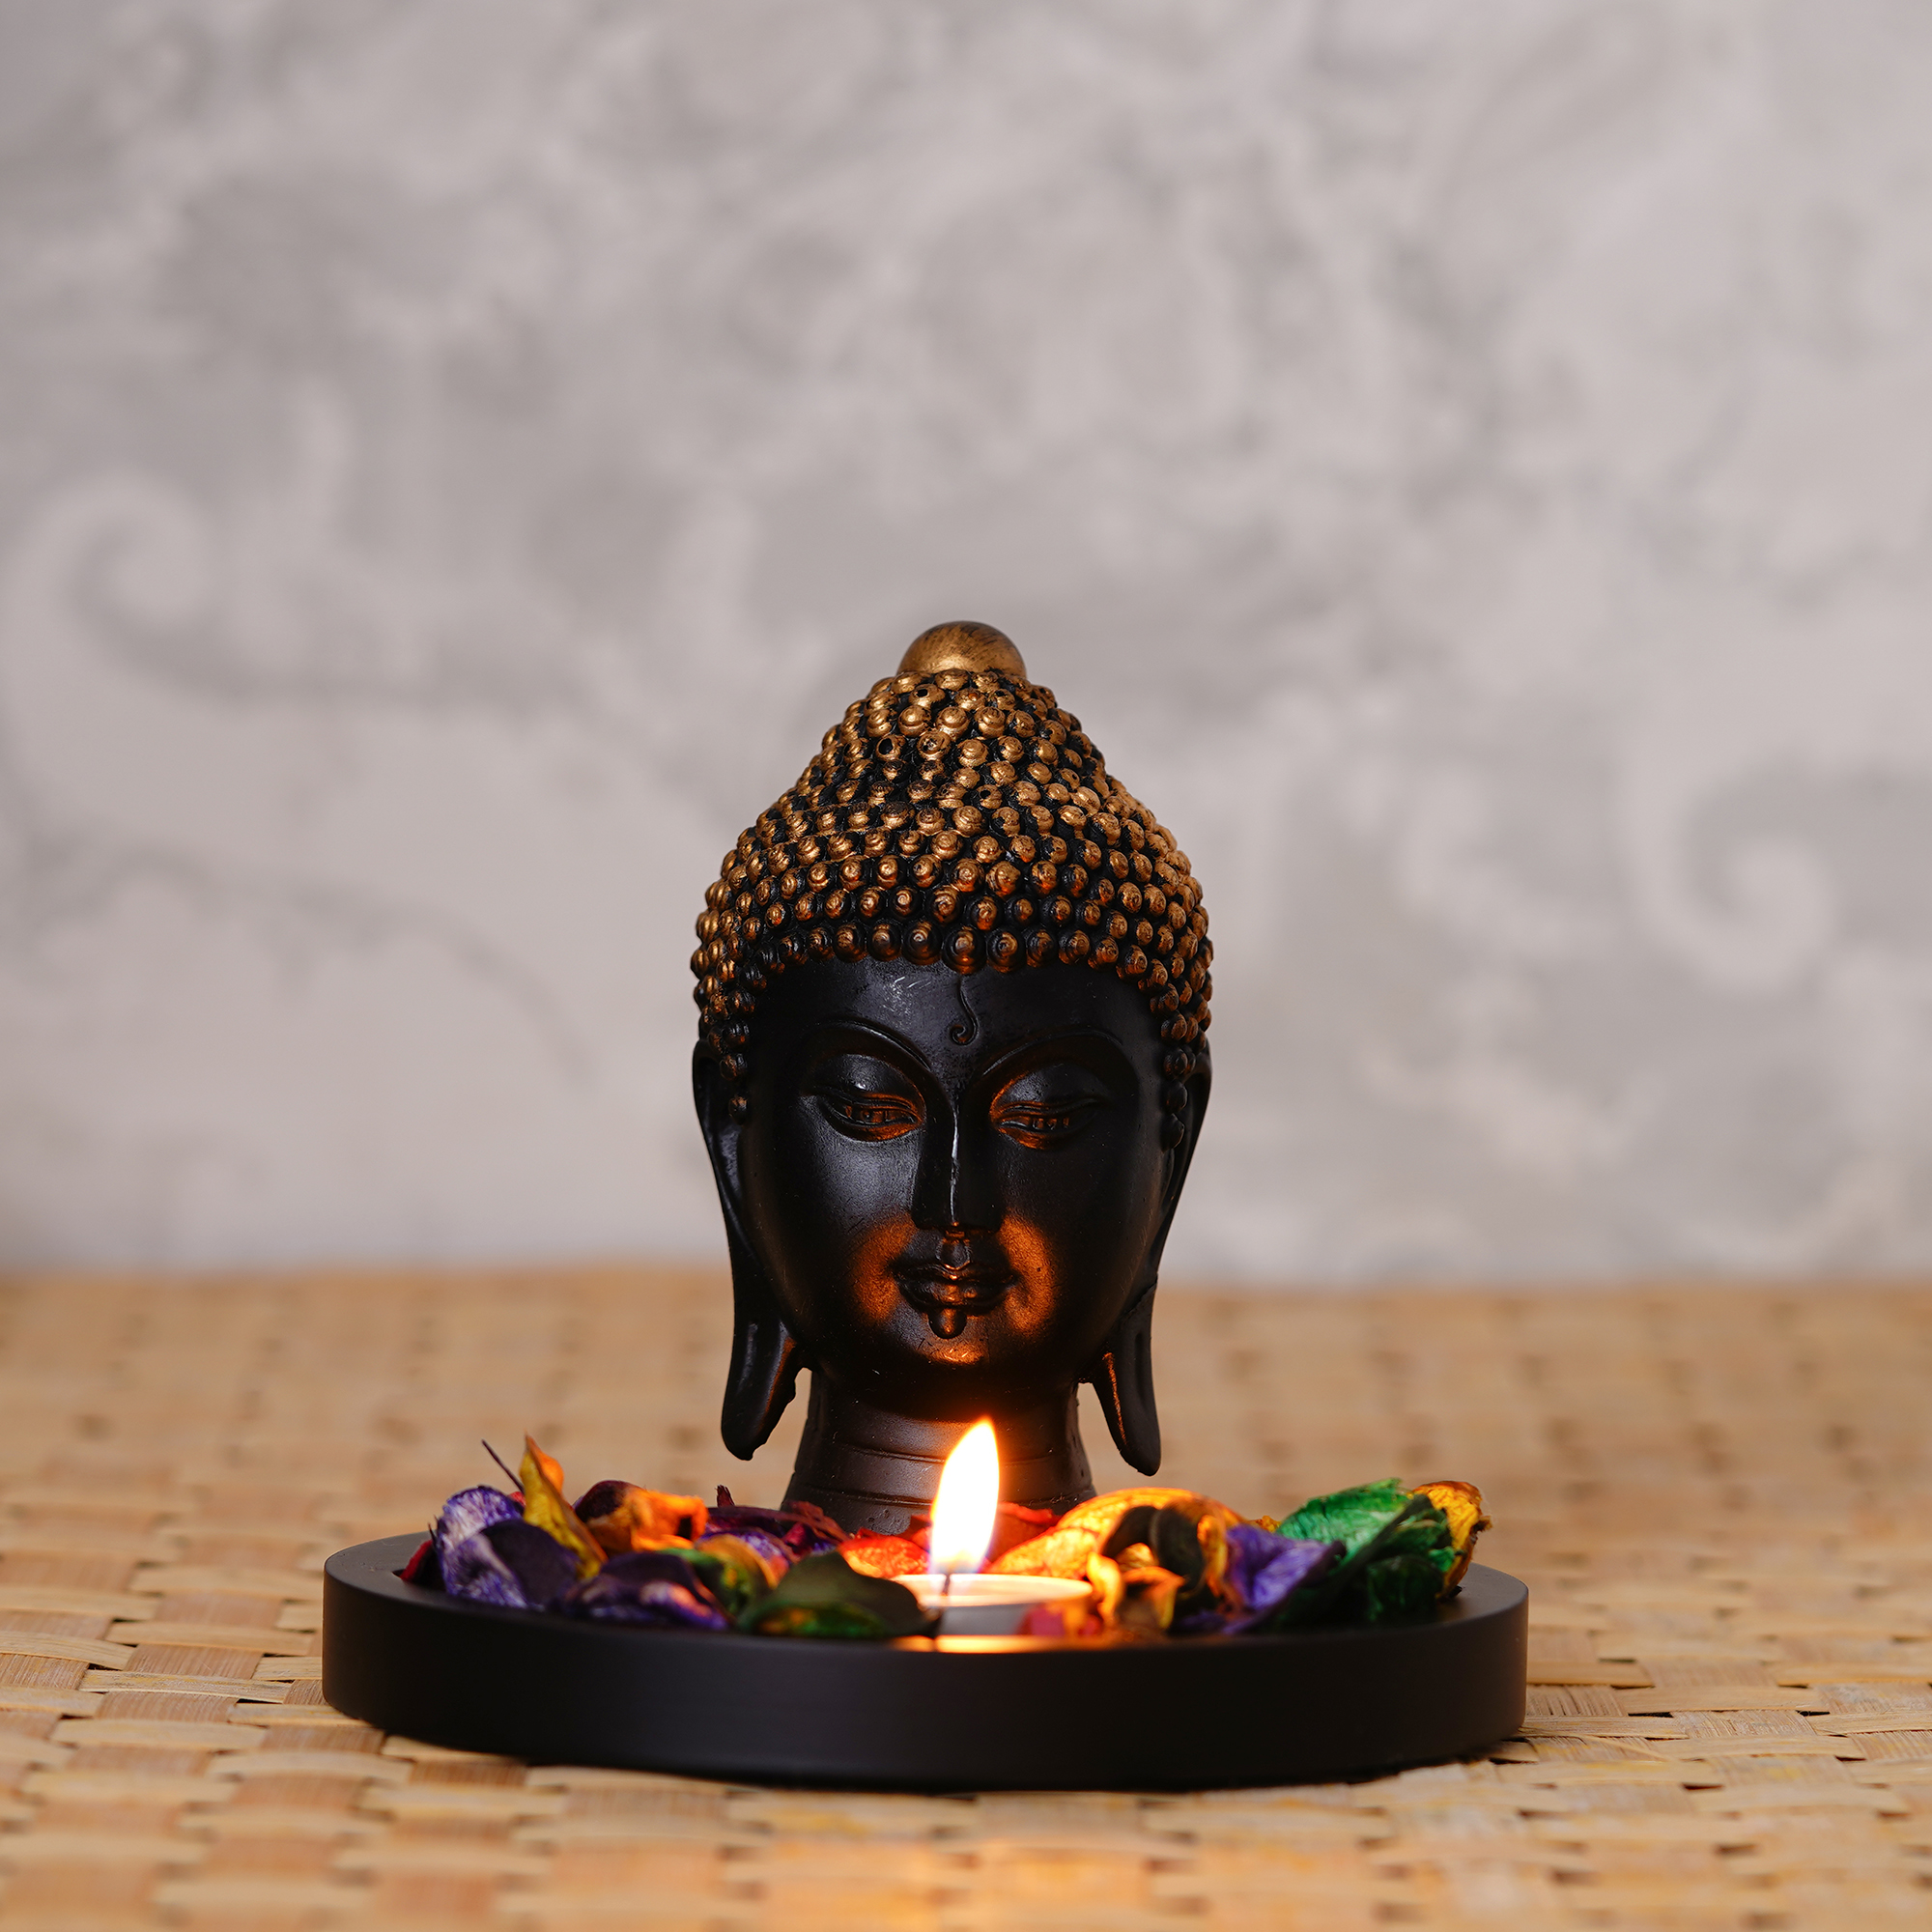 Decorative Black and Golden Buddha Head with Wooden Base, Fragranced Petals and Tealight Indian Home Decor